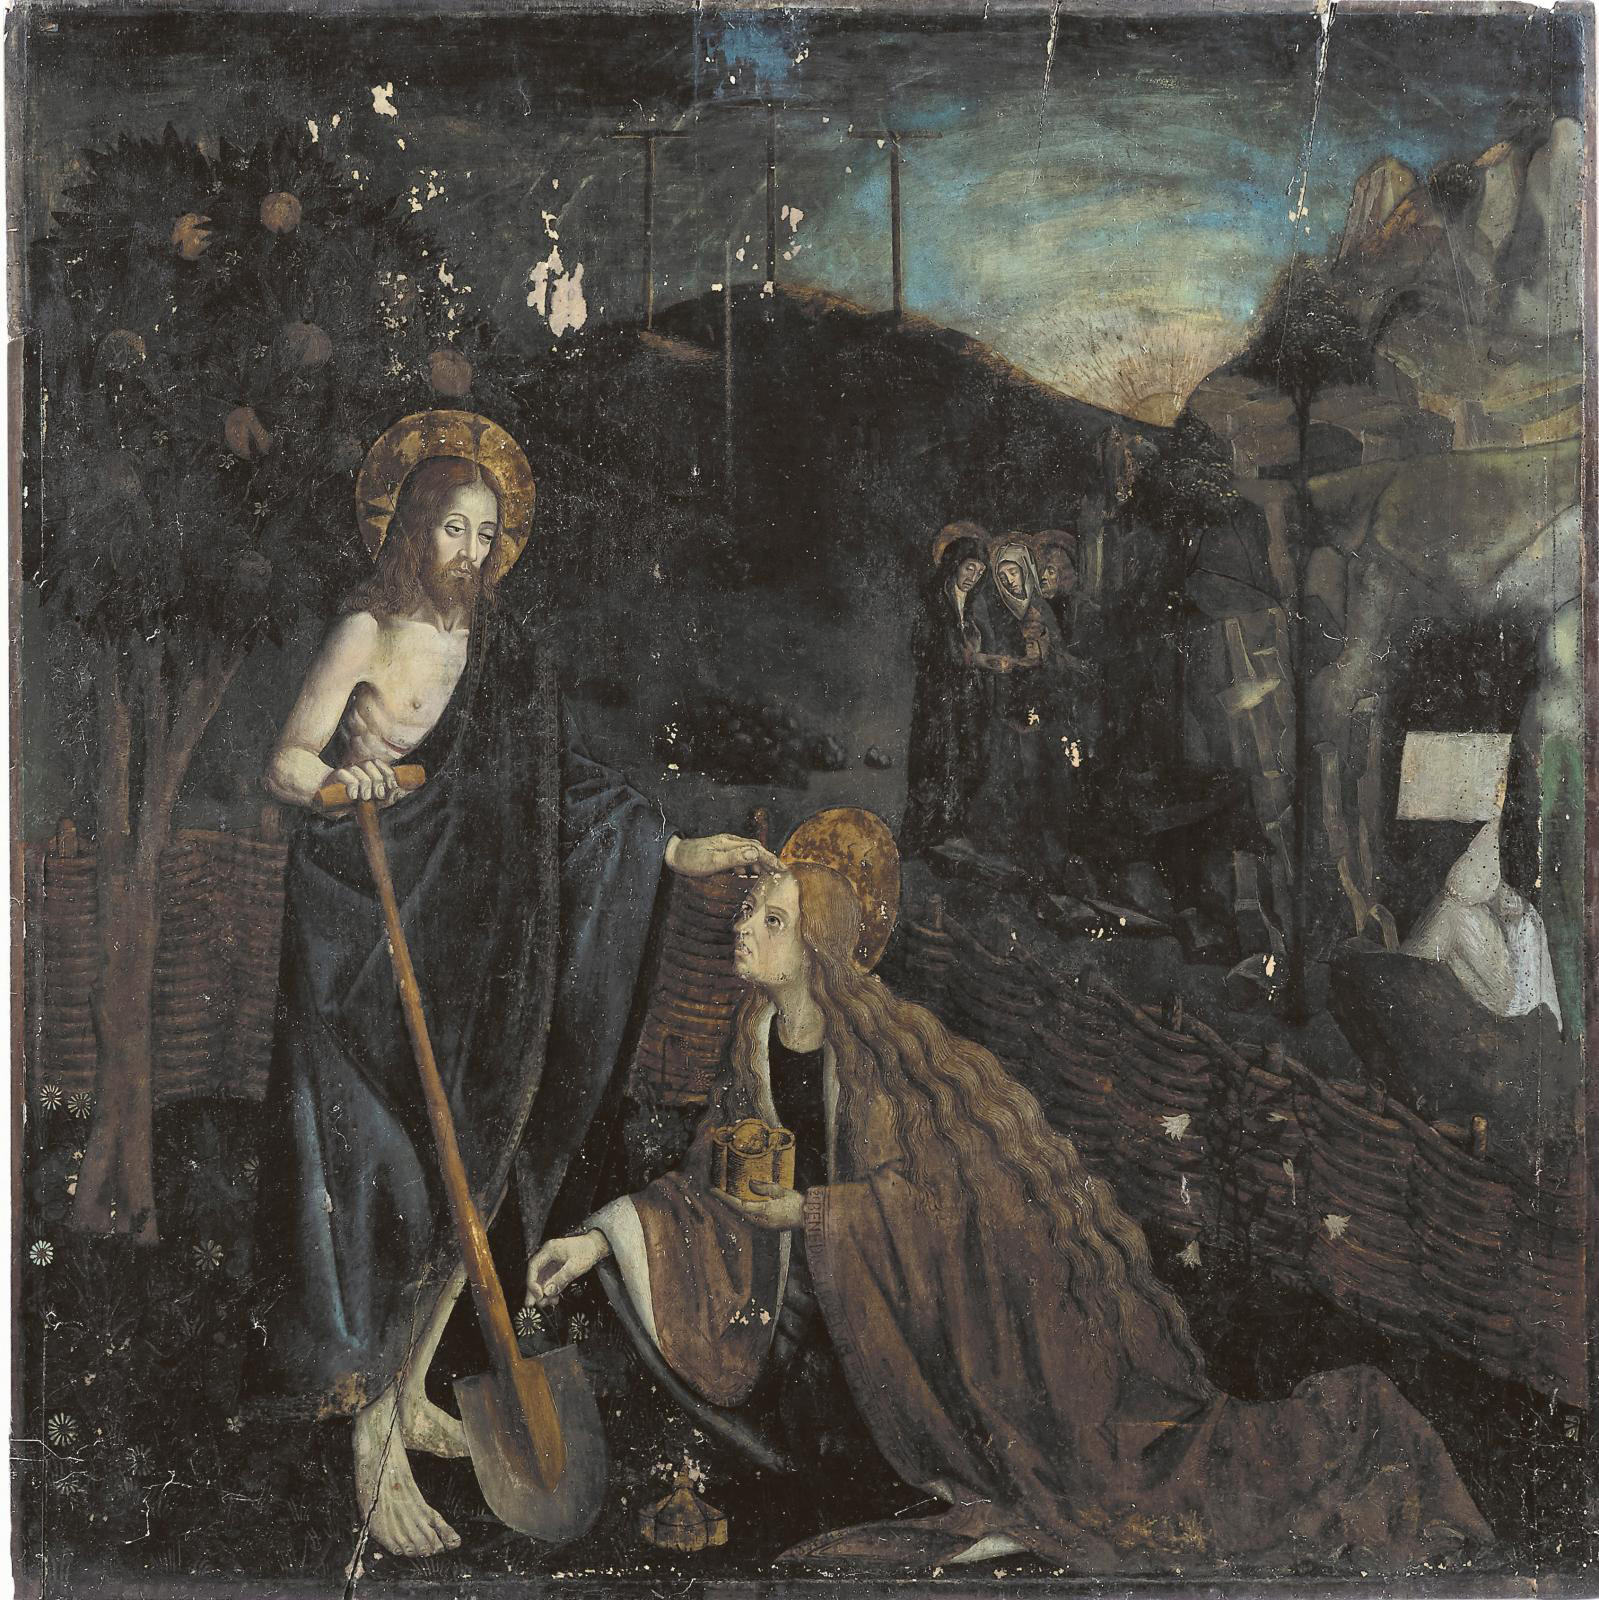 Scandinavian artist working in Provence in the late 15th century, Noli me tangere, oil painting on wood panel, 123 x 124 cm (approximately